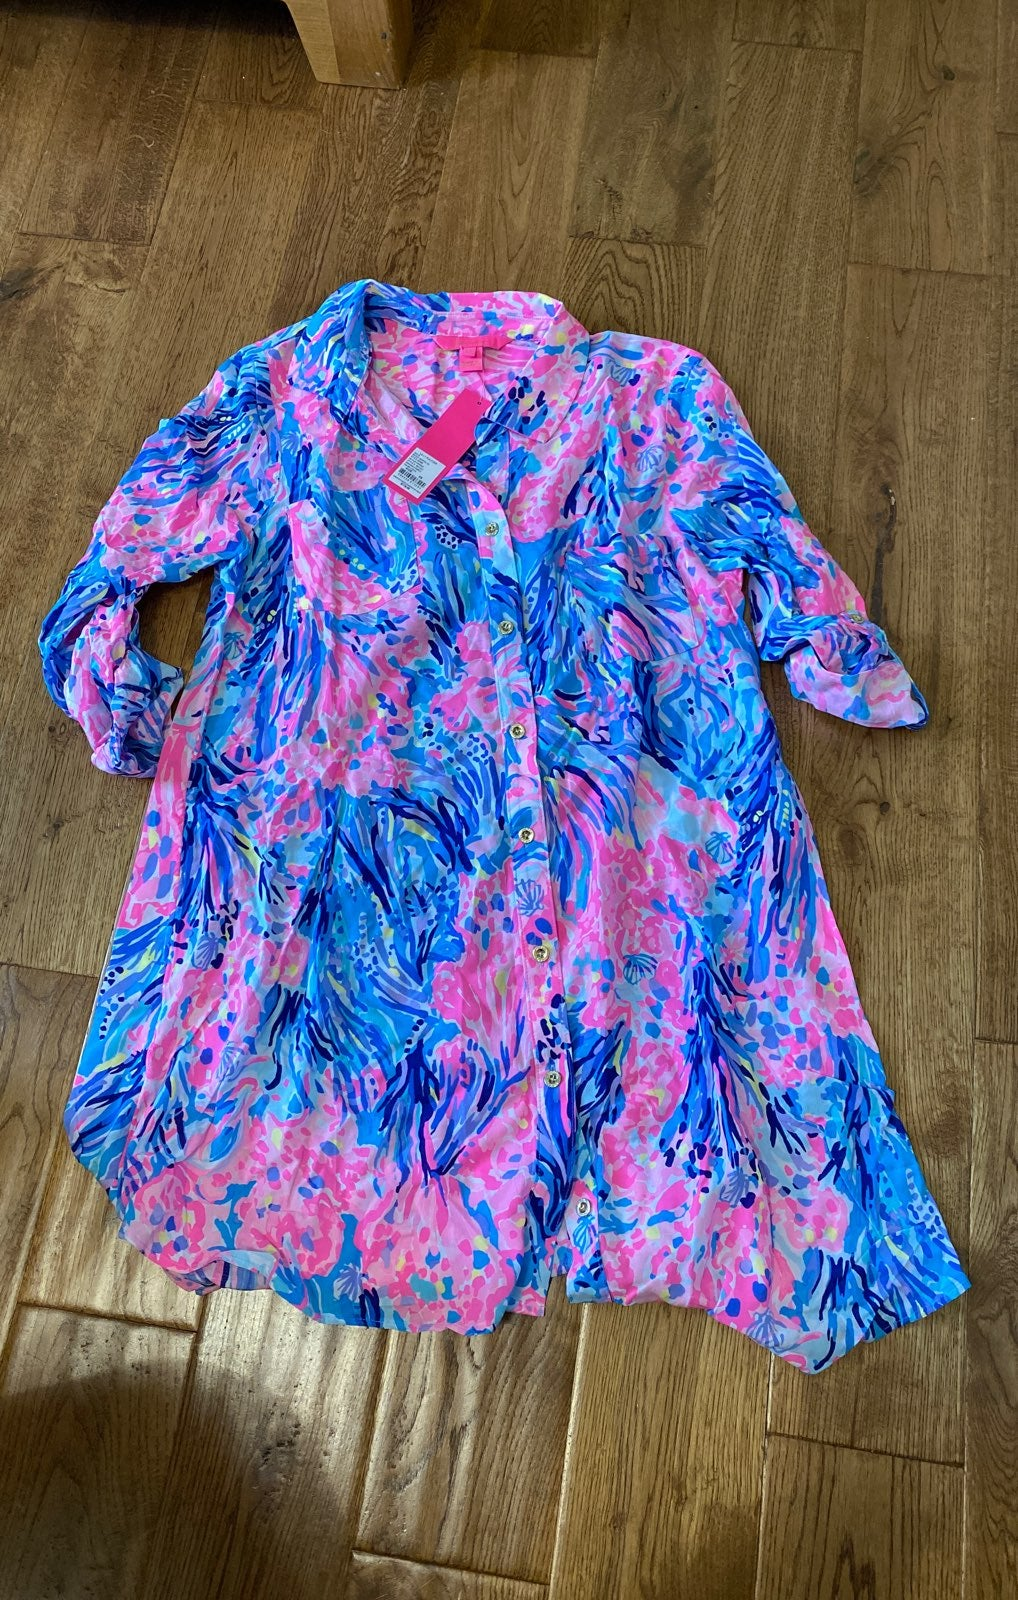 Nwt lilly pulitzer natalie swim cover up